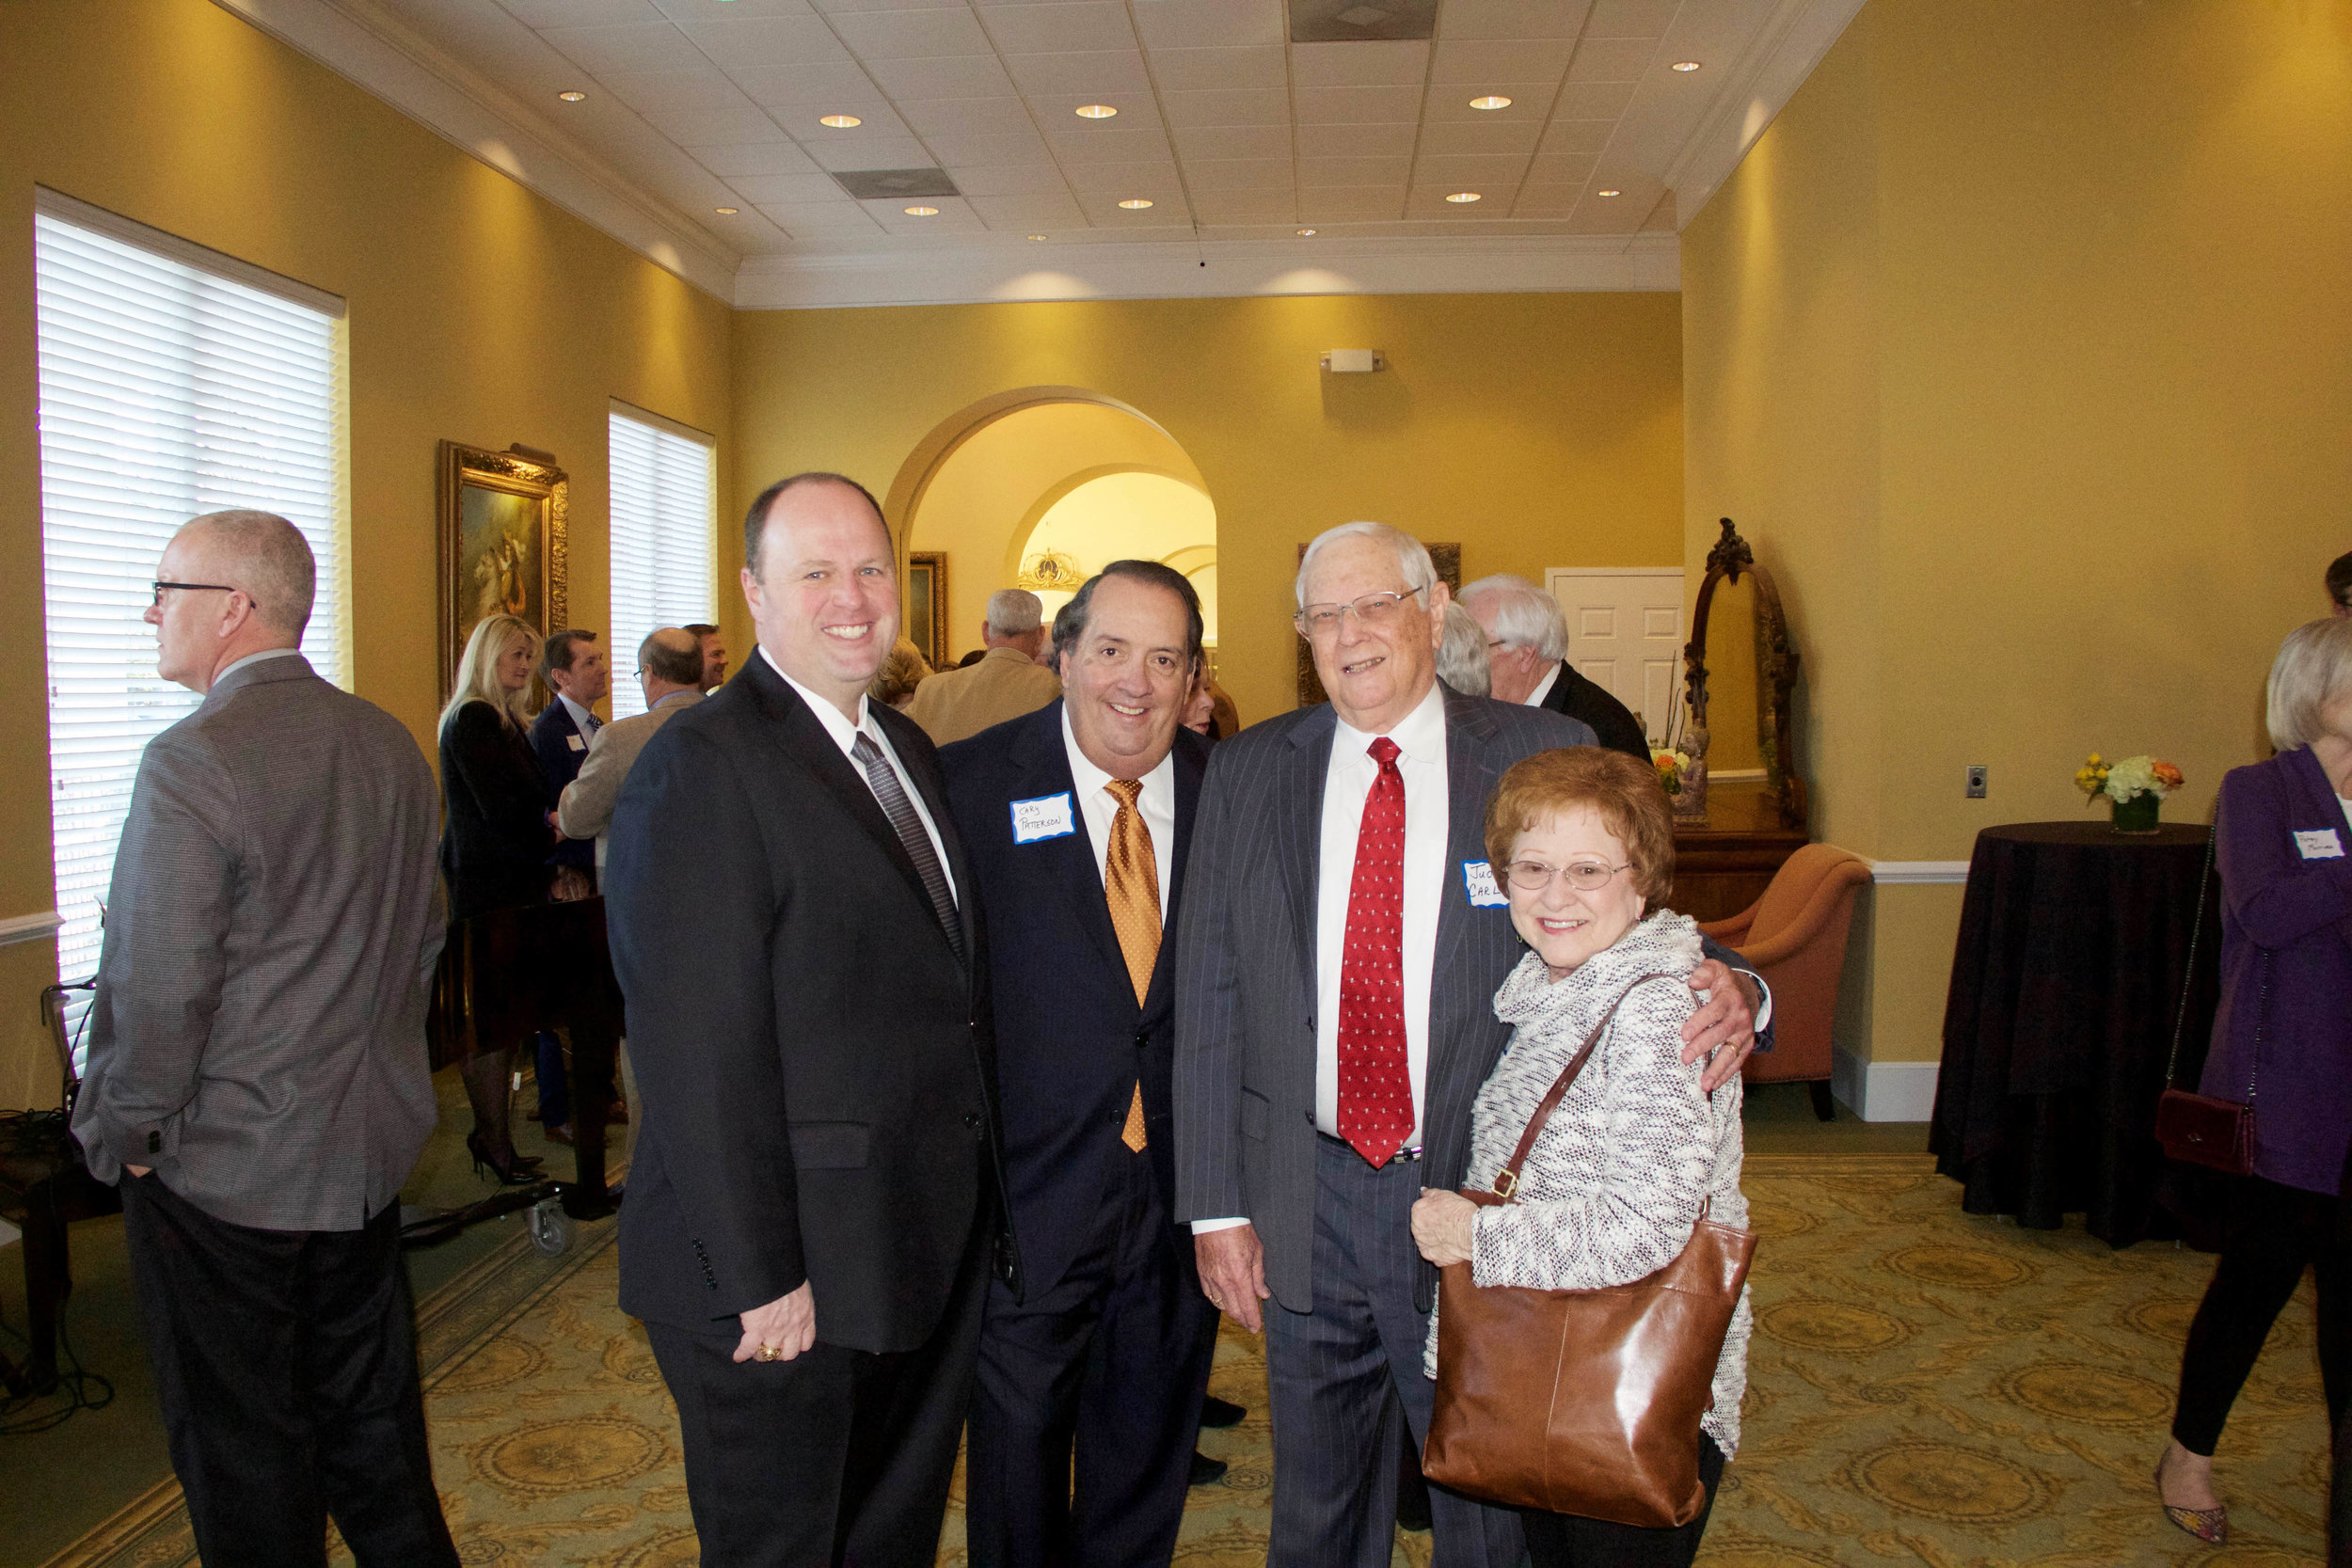 James Henry Russell. Cary Patterson, Judge James and Nancy Carlow